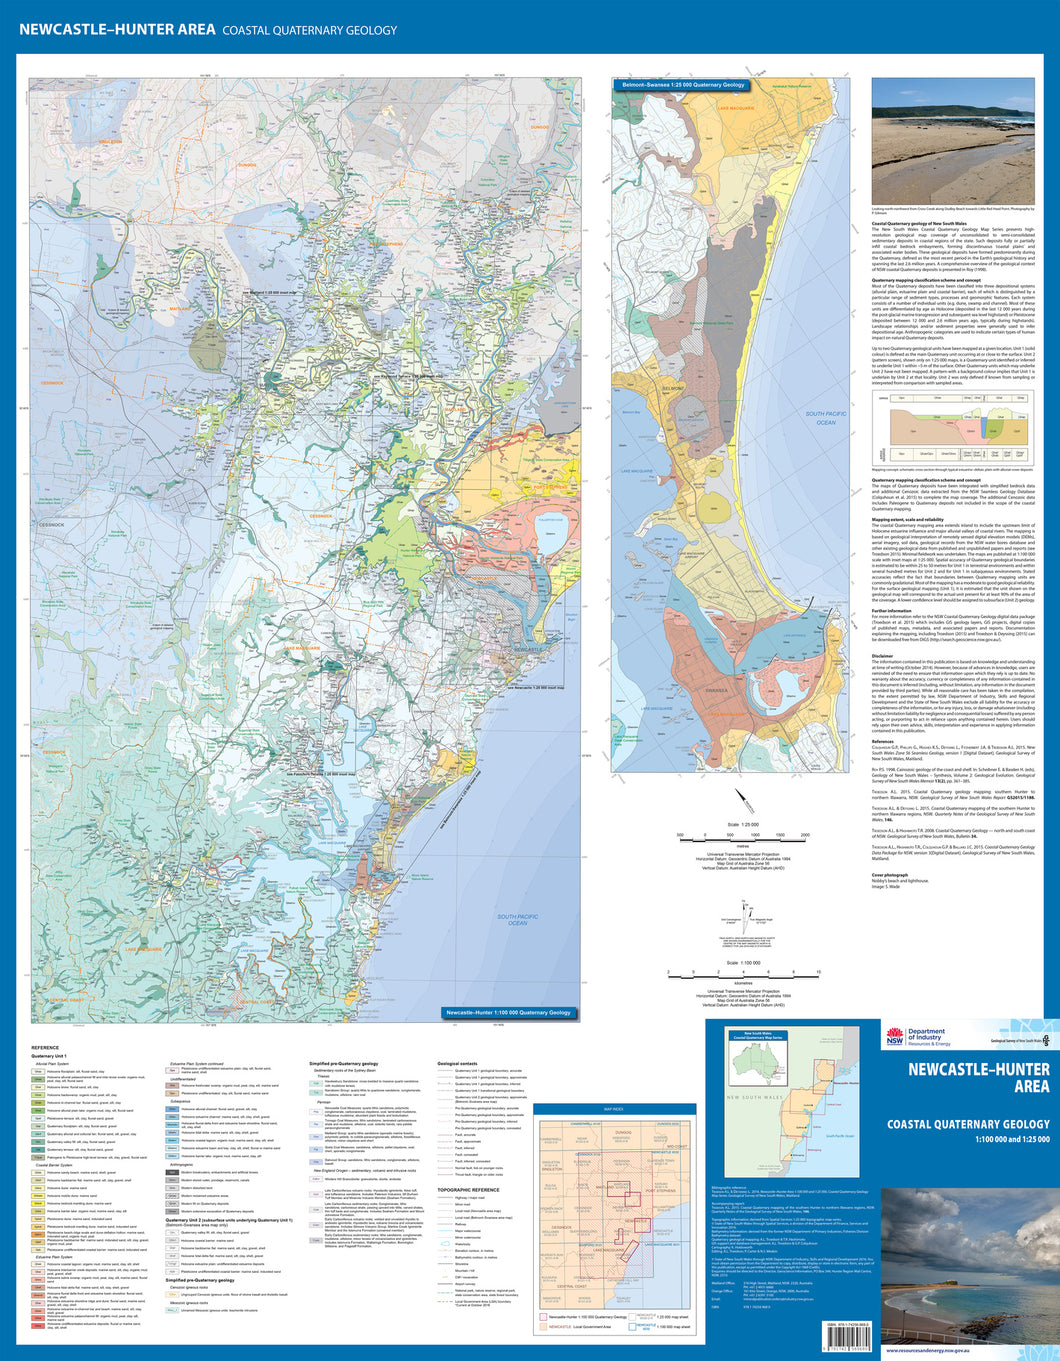 Image of Newcastle Area Coastal Quaternary Geology map